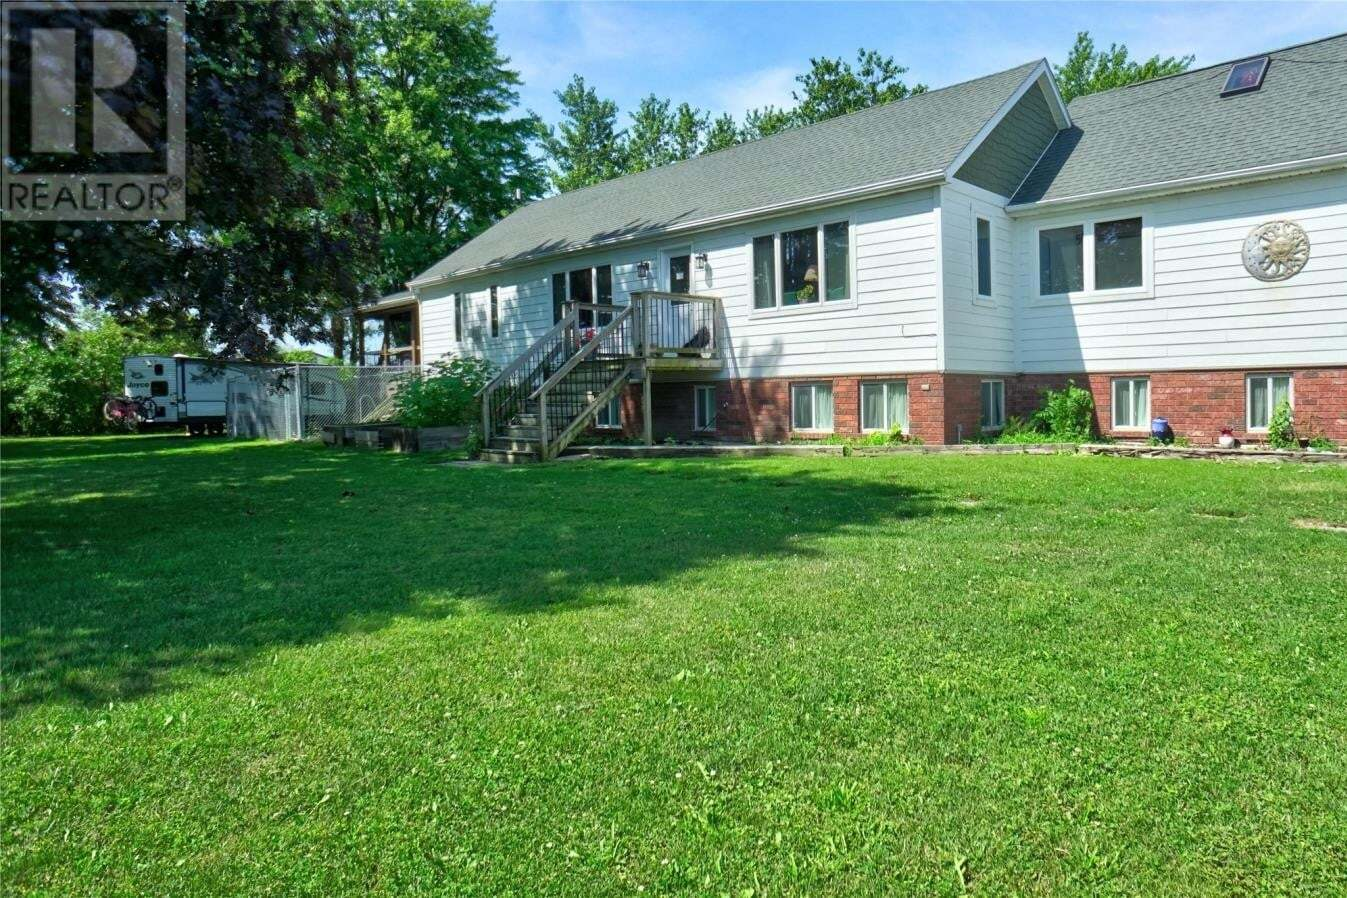 House for sale at 5285 Manning Road  Tecumseh Ontario - MLS: 20009346